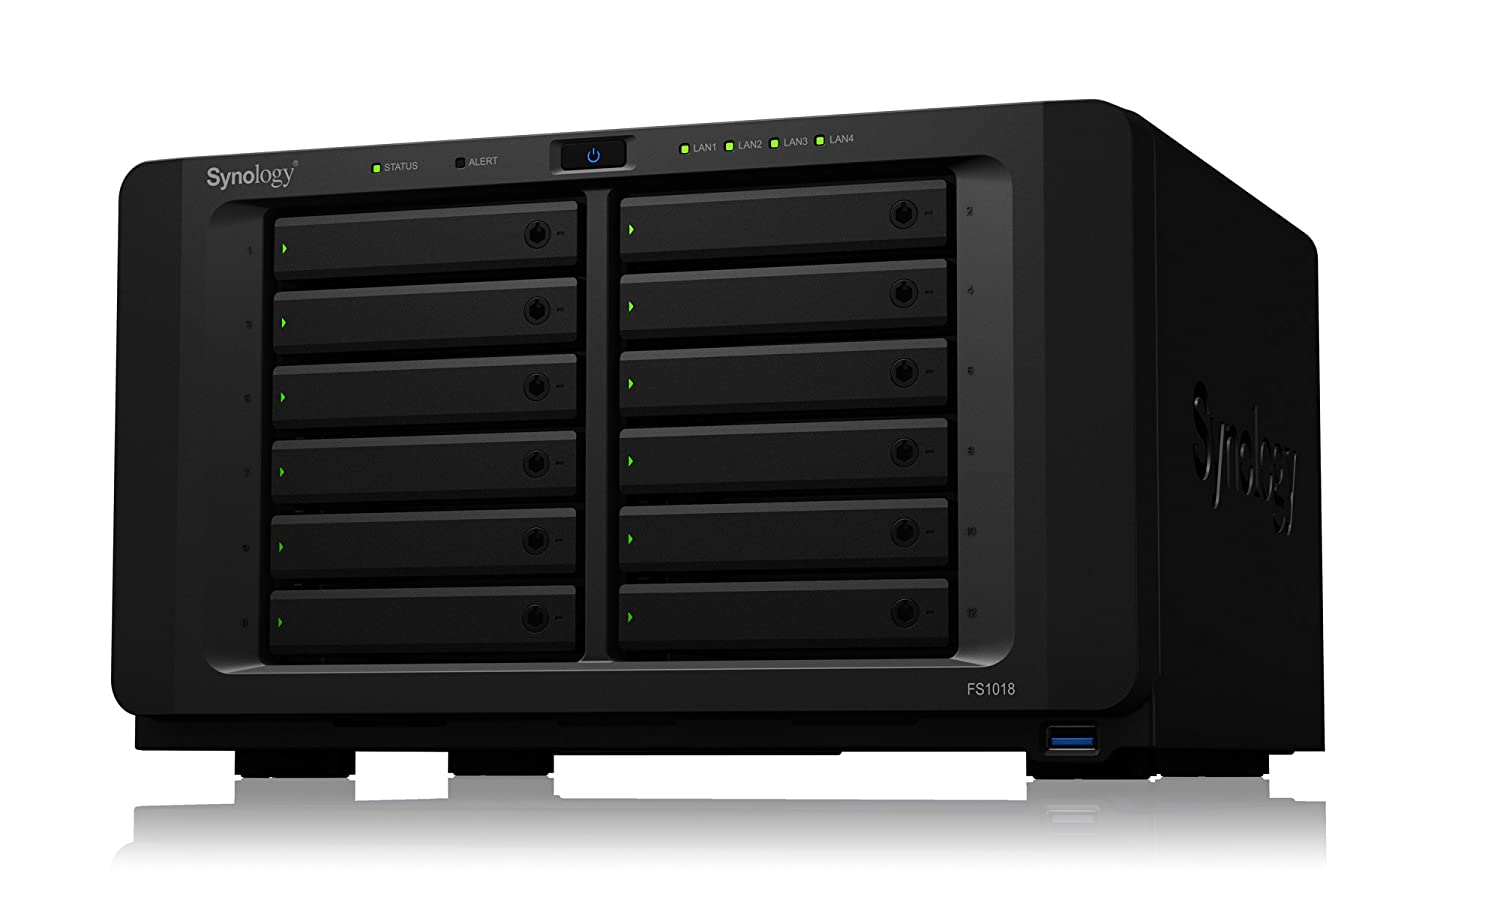 感謝の声続々! Synology FS1018 FlashStation FS1018 CS7124 [オールフラッシュエンタープライズストレージ 12ベイモデル] FlashStation CS7124 B077Y5W76N, bagger jack design:ba361c97 --- ciadaterra.com